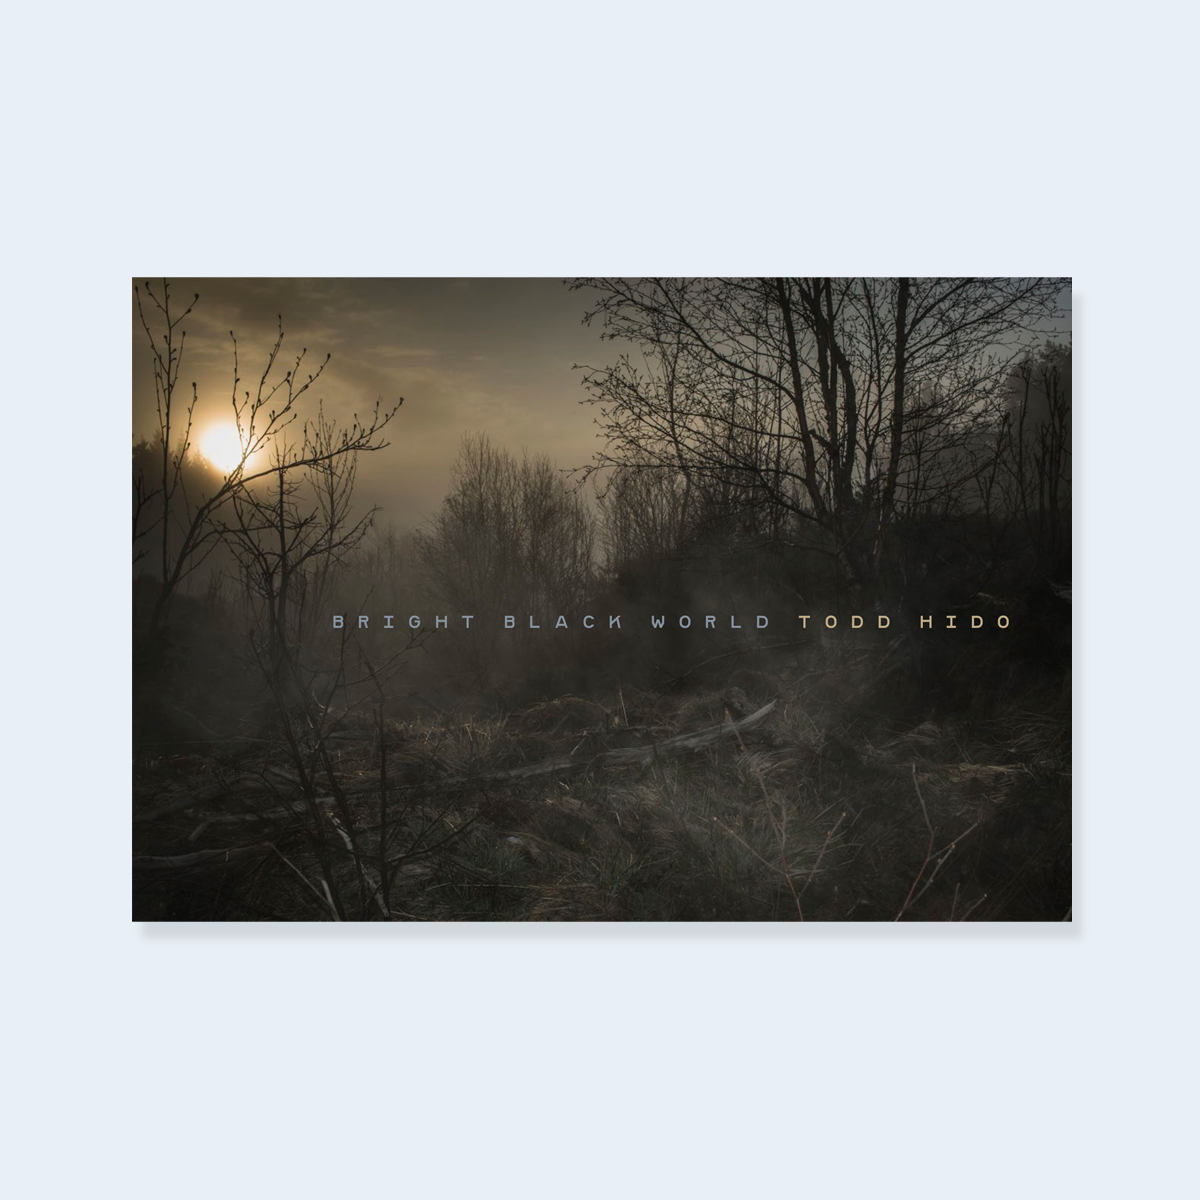 SOLD OUT (2nd Printing Coming Soon) TODD HIDO |  Bright Black World